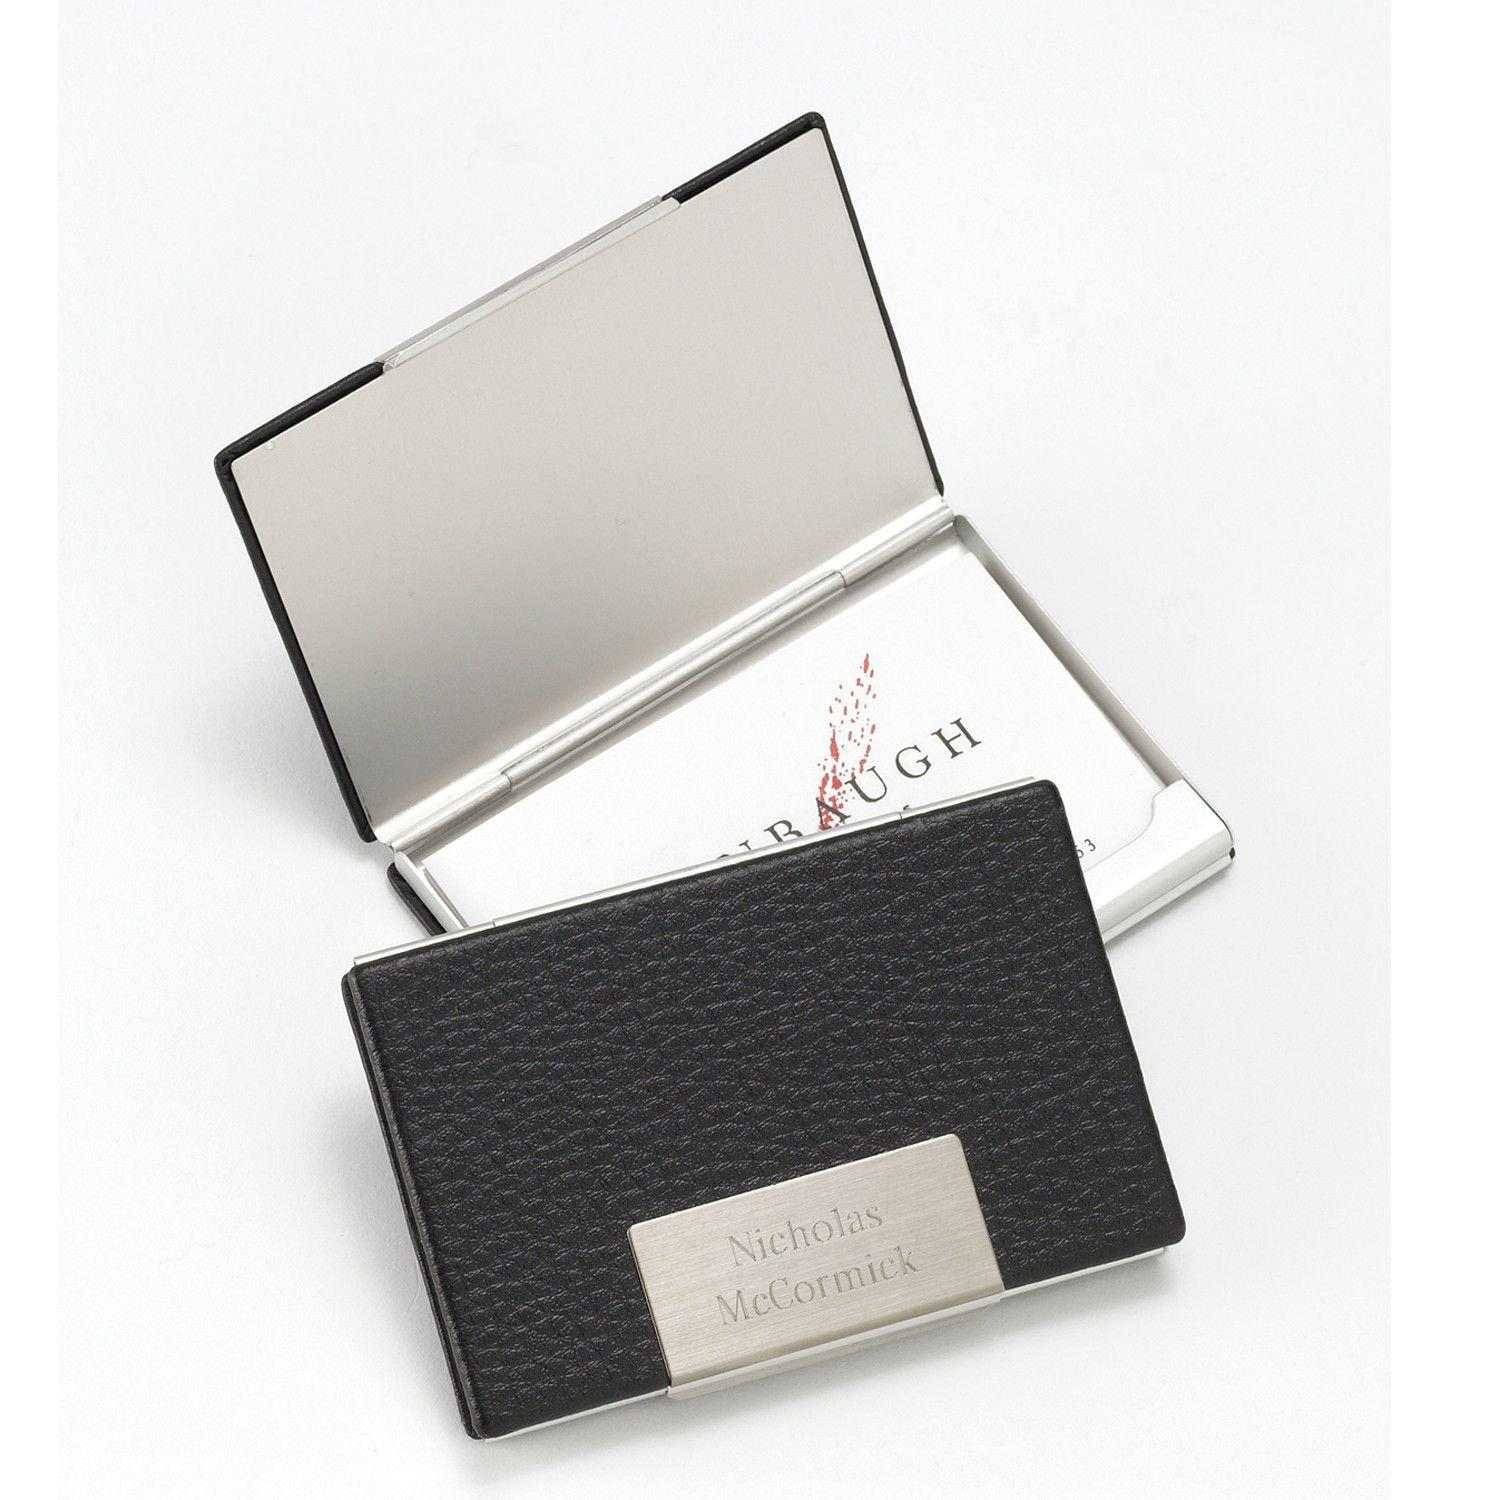 Personalized business card holder black leather executive gifts personalized business card holder black leather executive gifts colourmoves